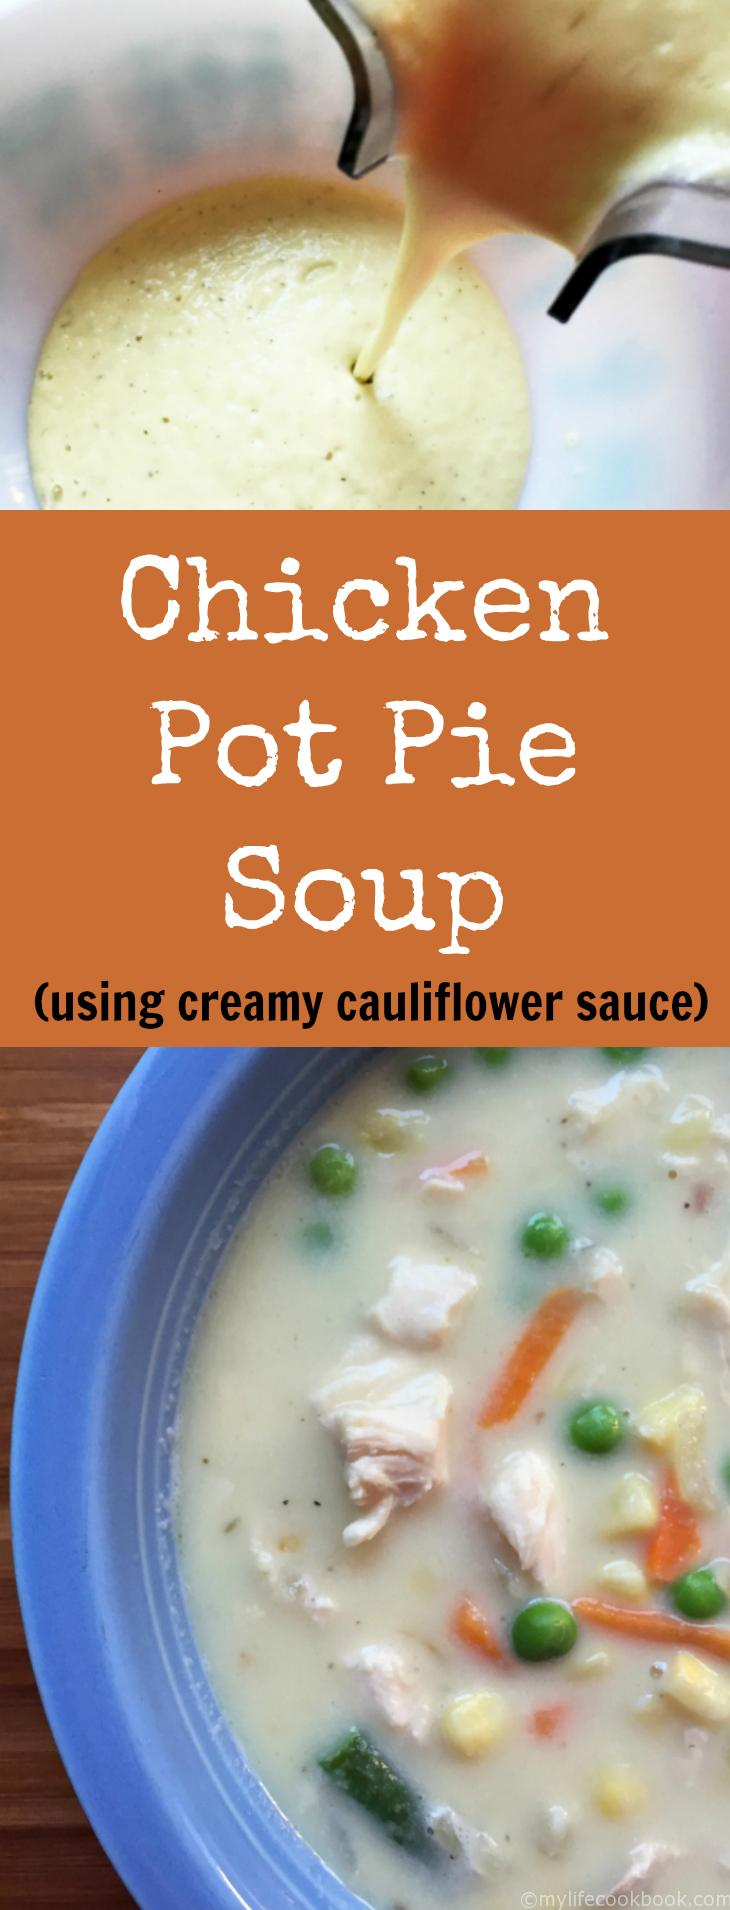 This Paleo chicken pot pie soup uses a creamy, cauliflower sauce instead of cream. Takes little time and uses items you probably have on hand.